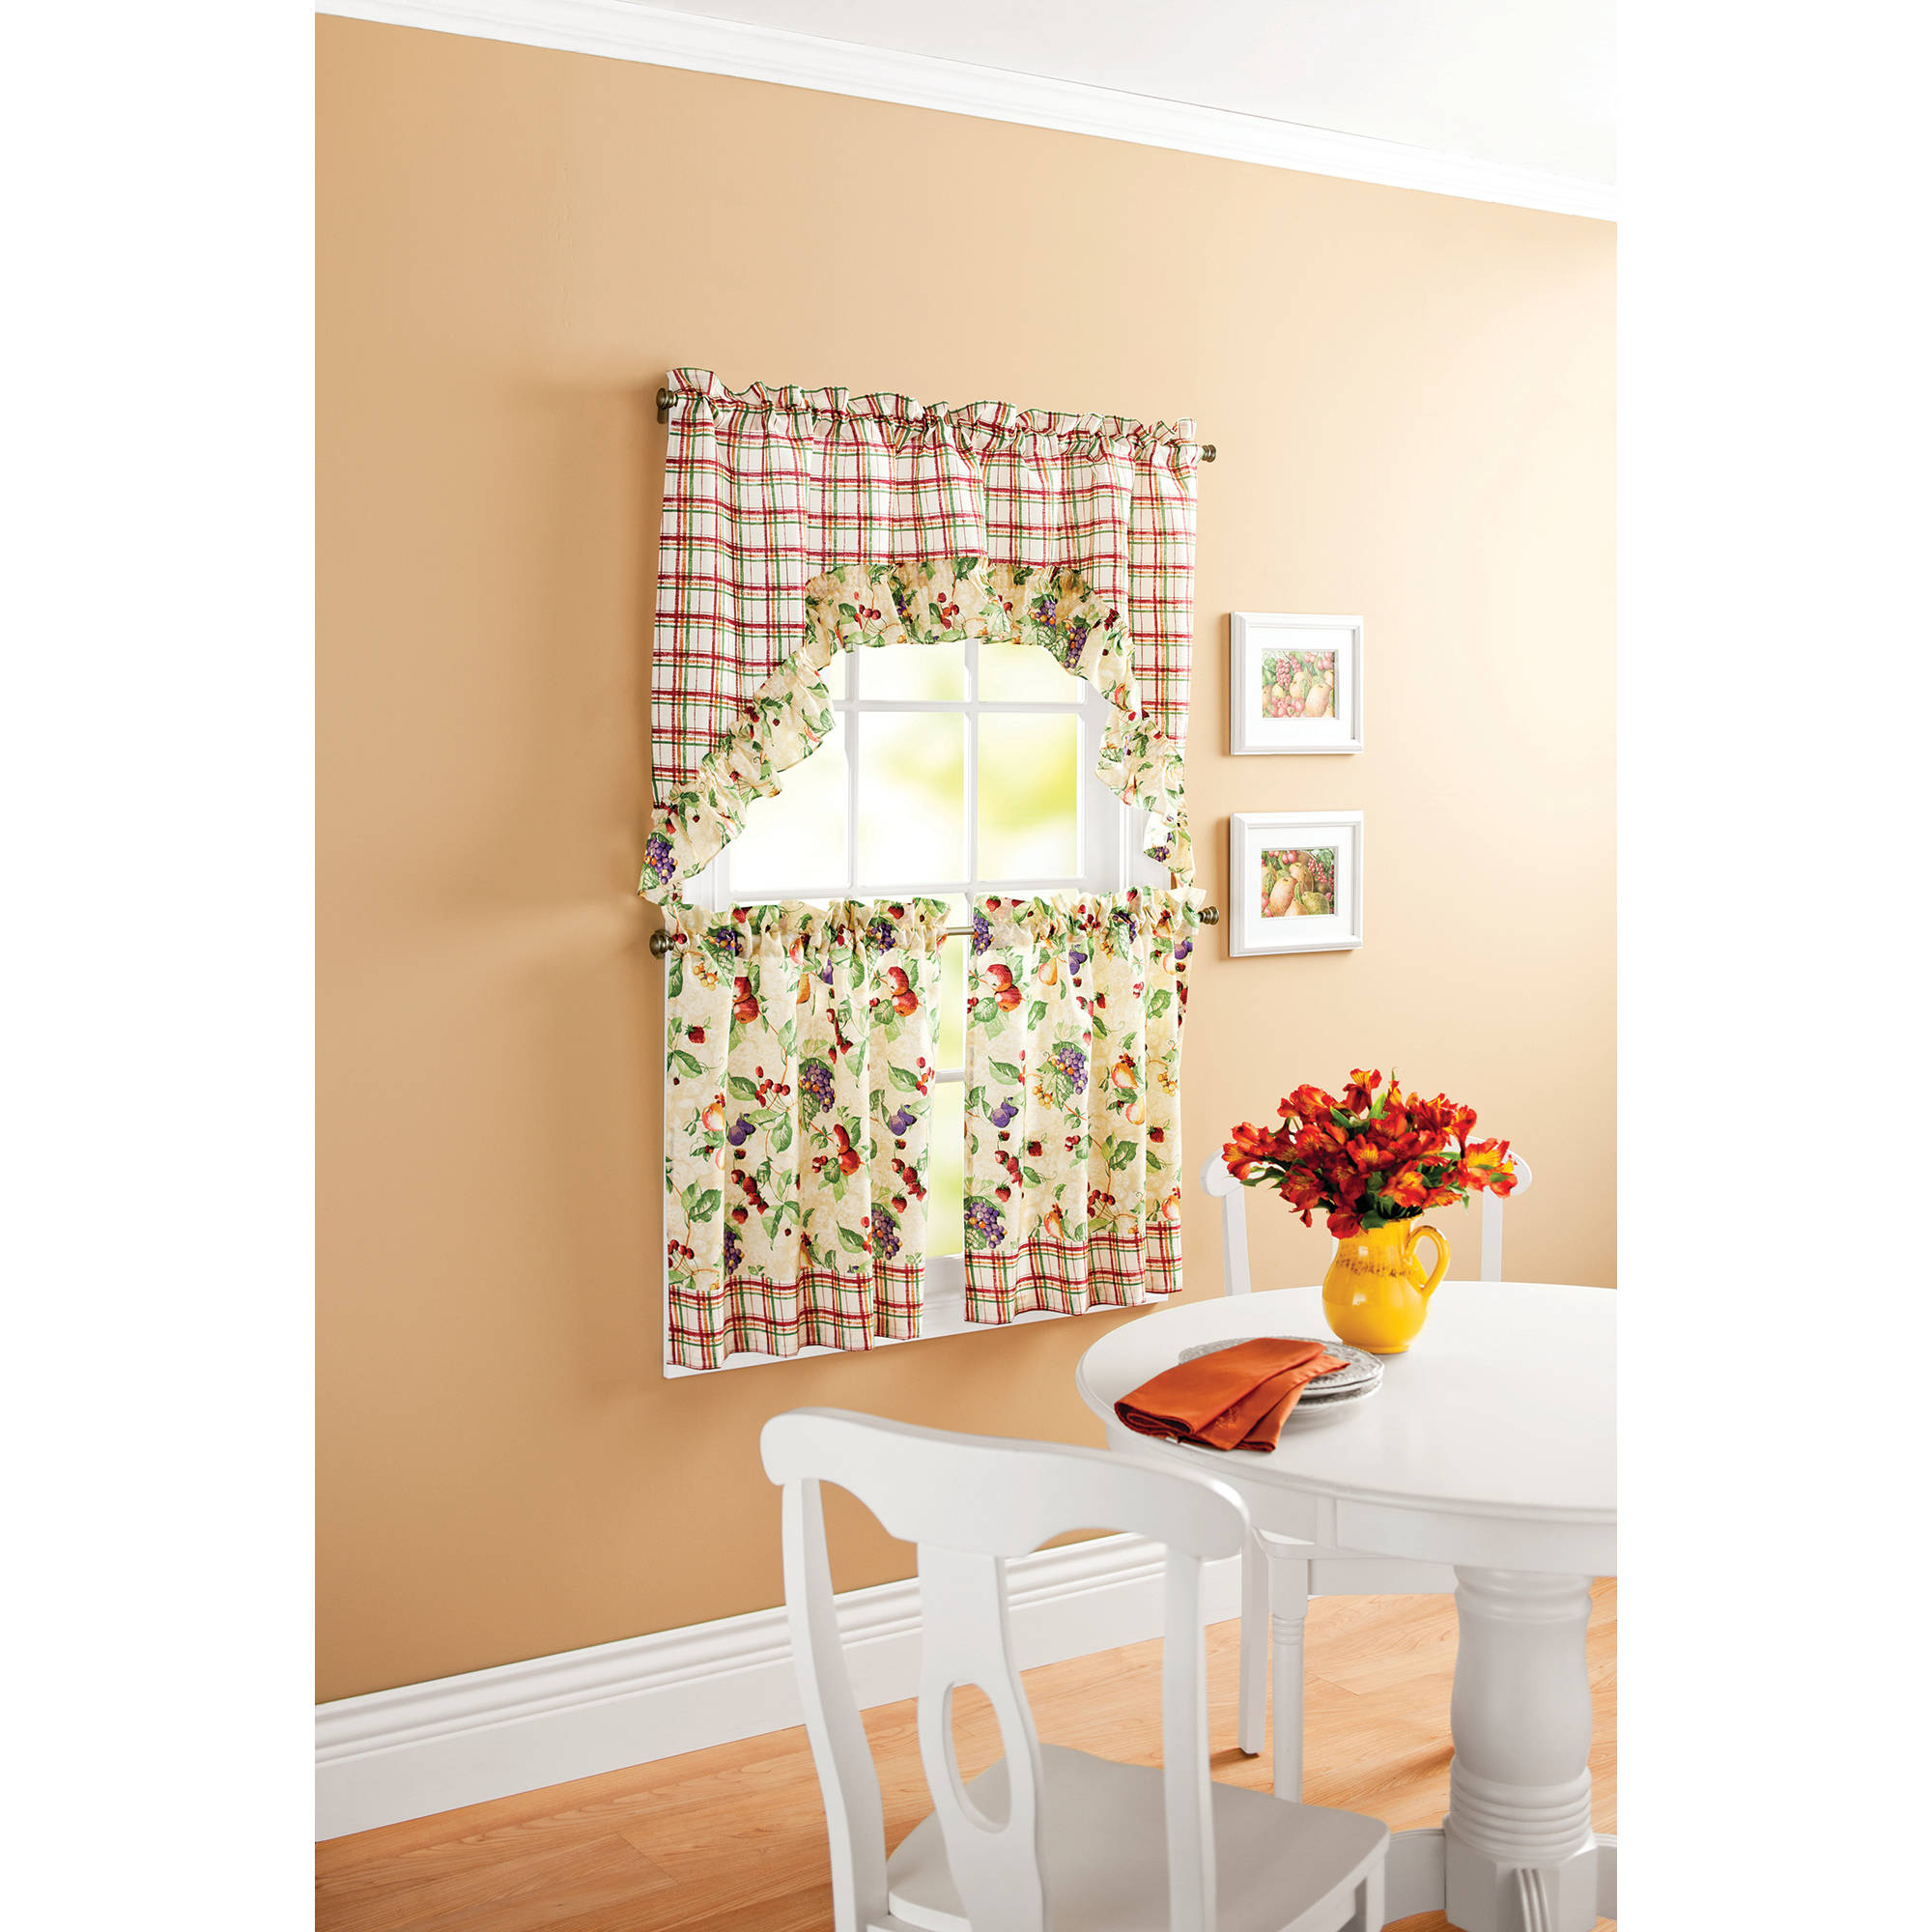 Mainstays Orchard Fruits Kitchen Curtain 3 Piece Tier Valance Set by Richloom Home fashions